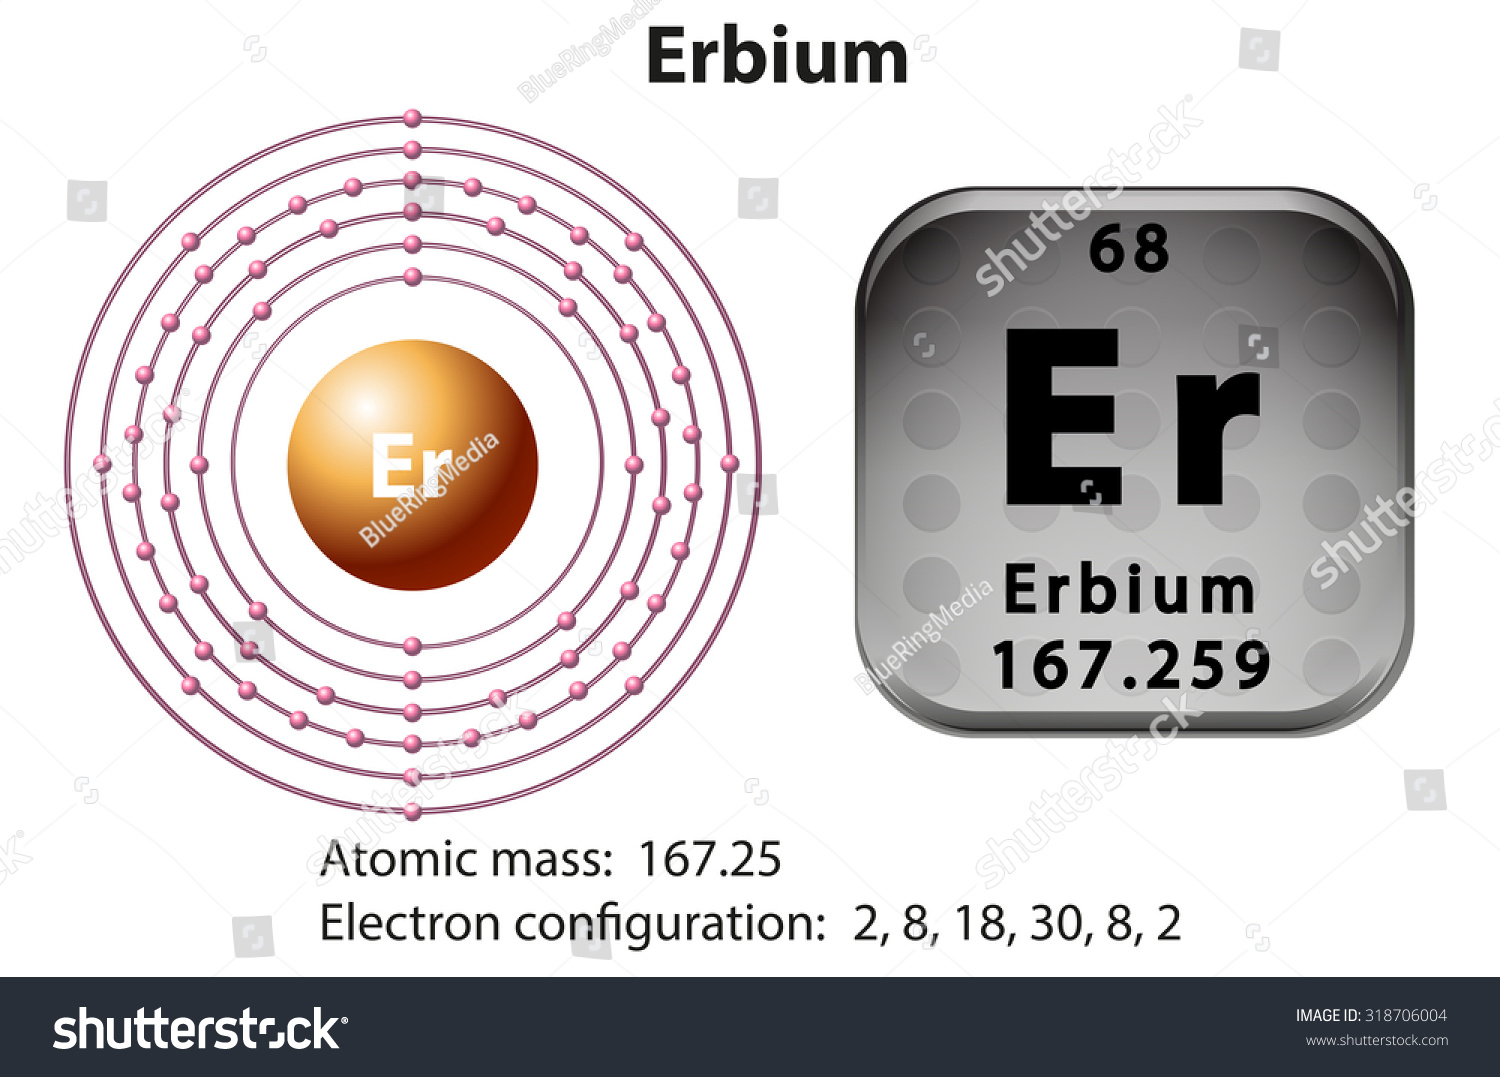 Erbium er element periodic table retail store layout software alcohol periodic table symbol gallery periodic table images stock vector symbol and electron diagram for erbium gamestrikefo Image collections